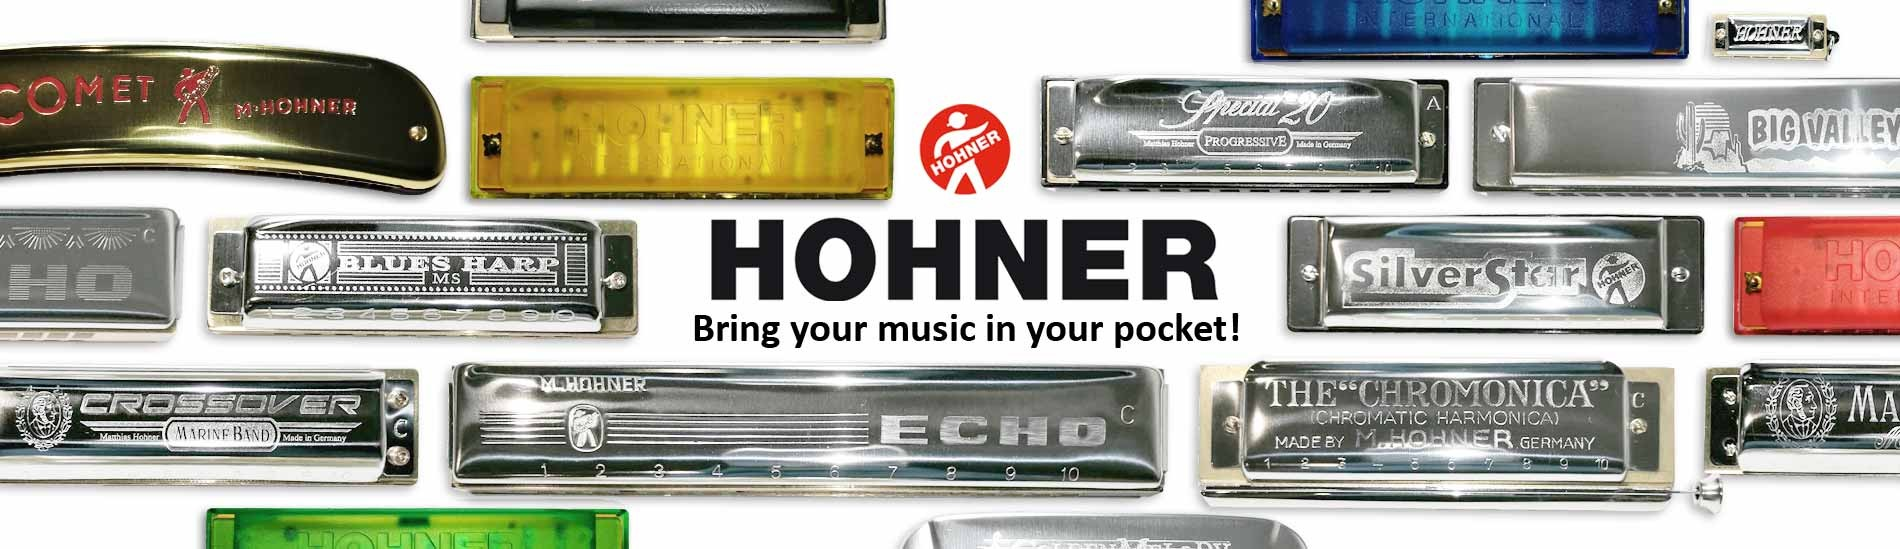 Hohner Harmonicas - Bring your music in your pocket!